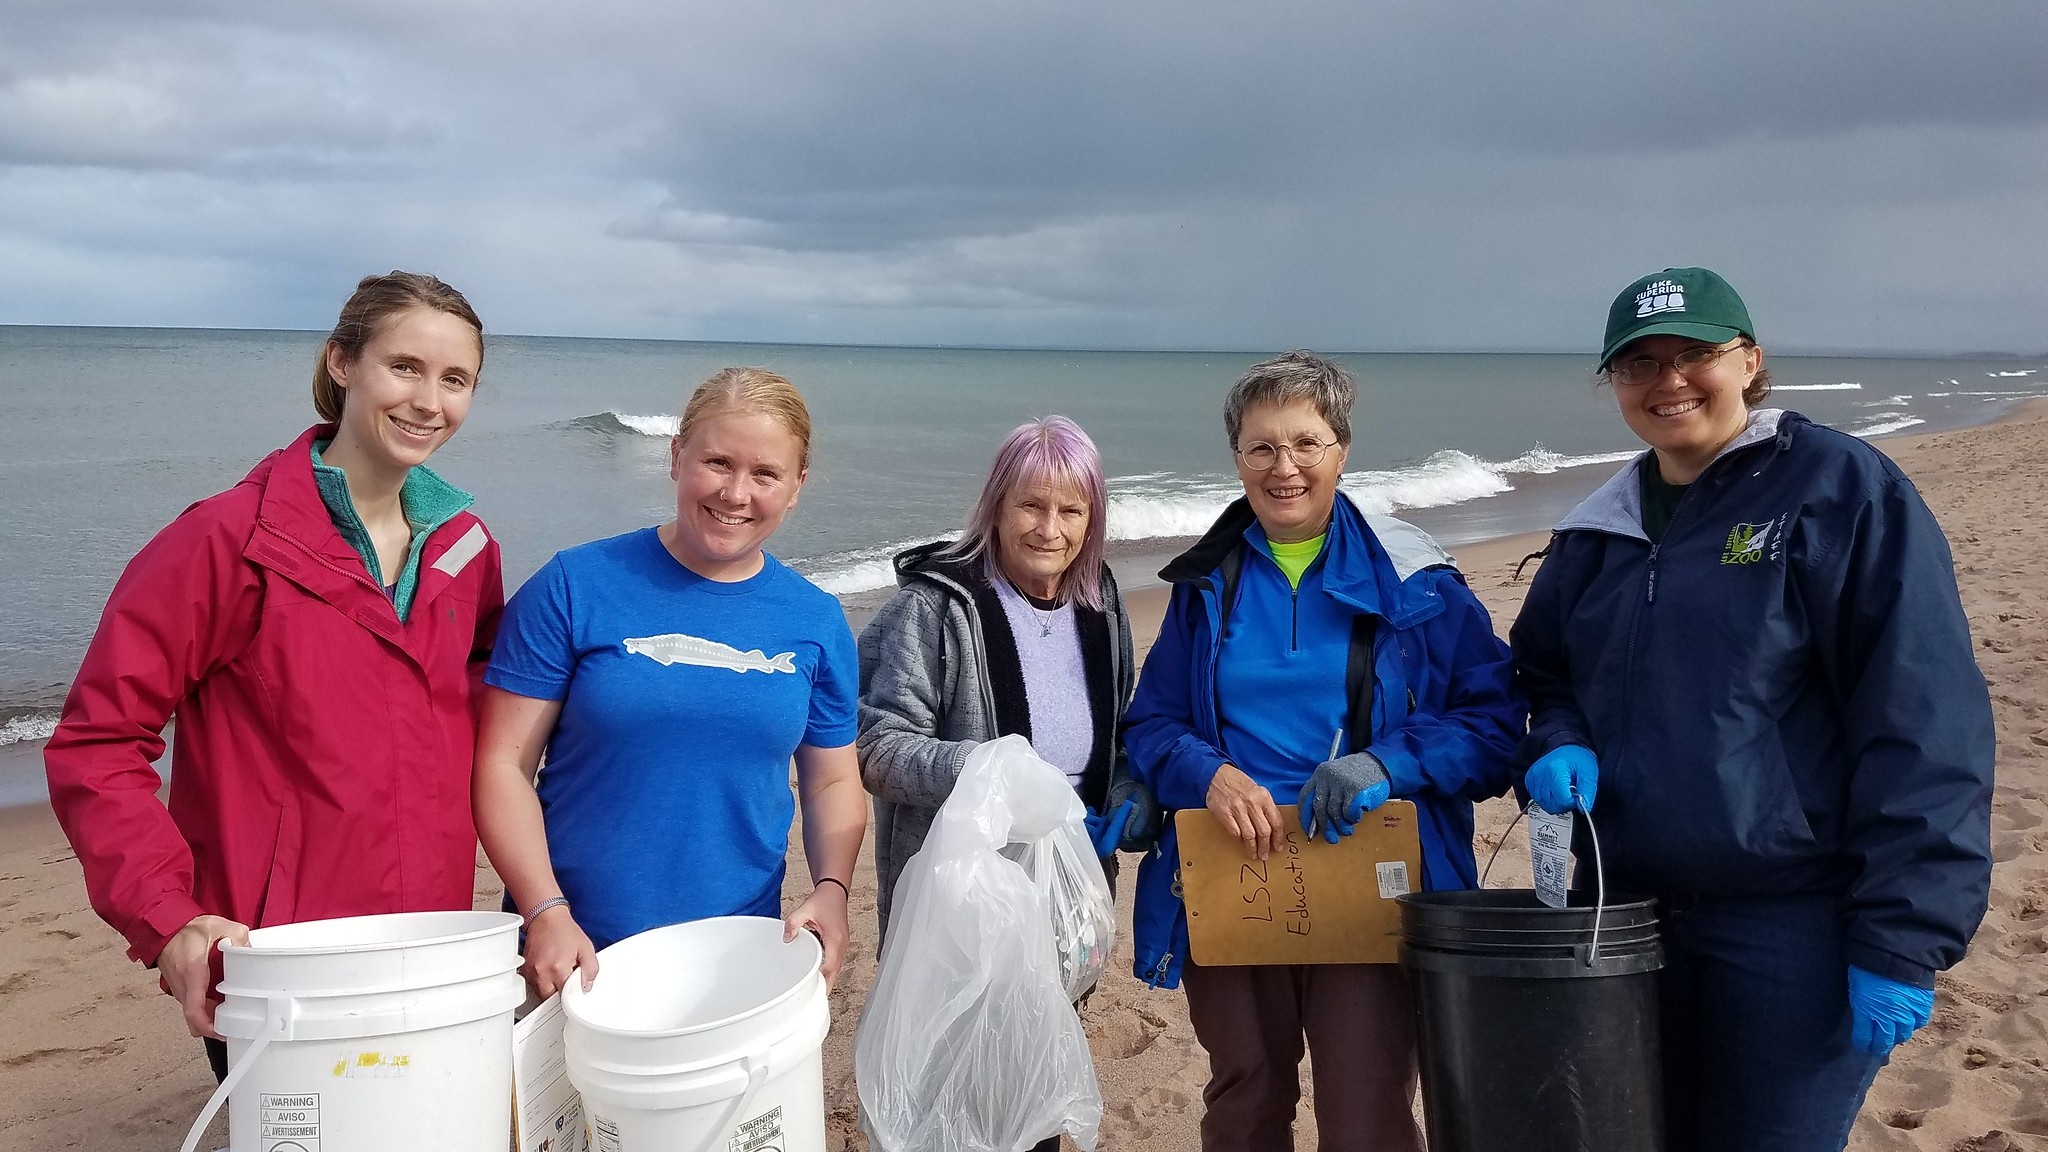 Five women at Adopt-a-beach holding trash and buckets